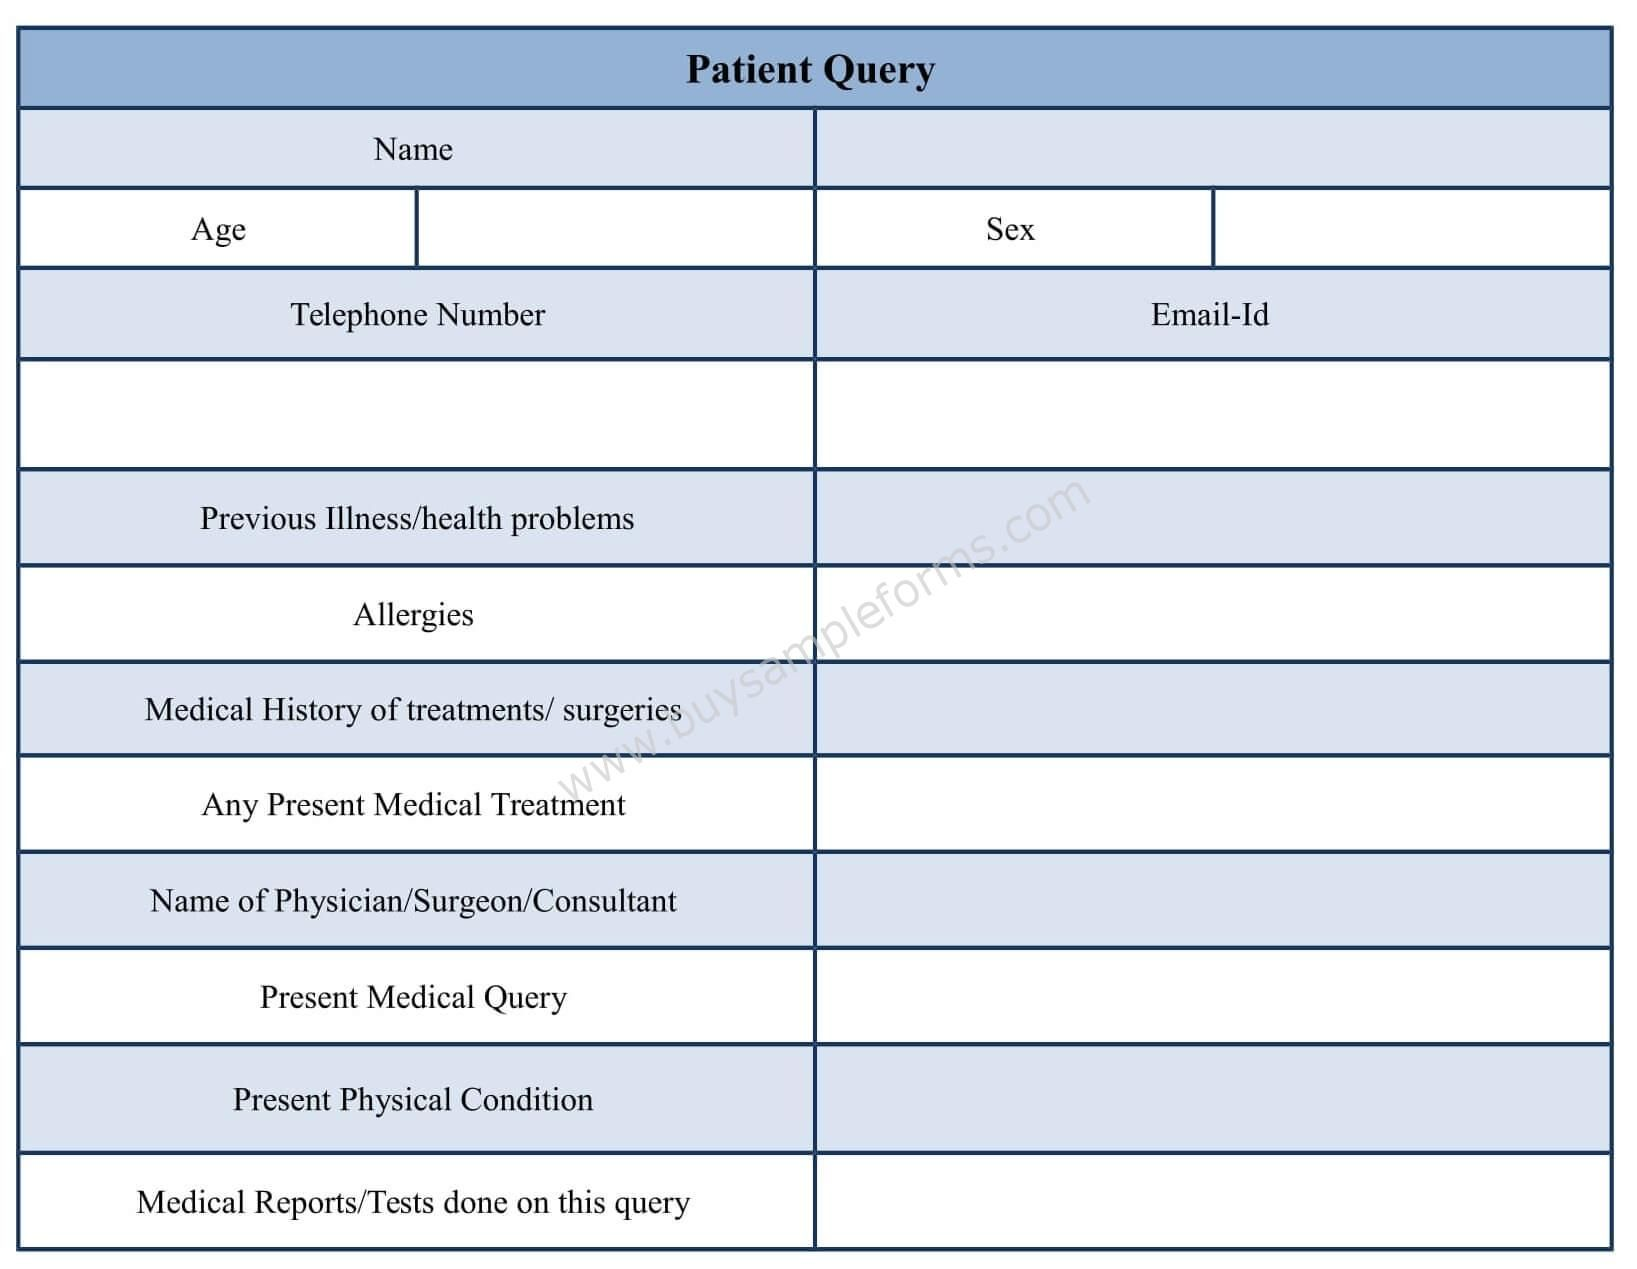 Patient Query Form Template in Word Format Medical